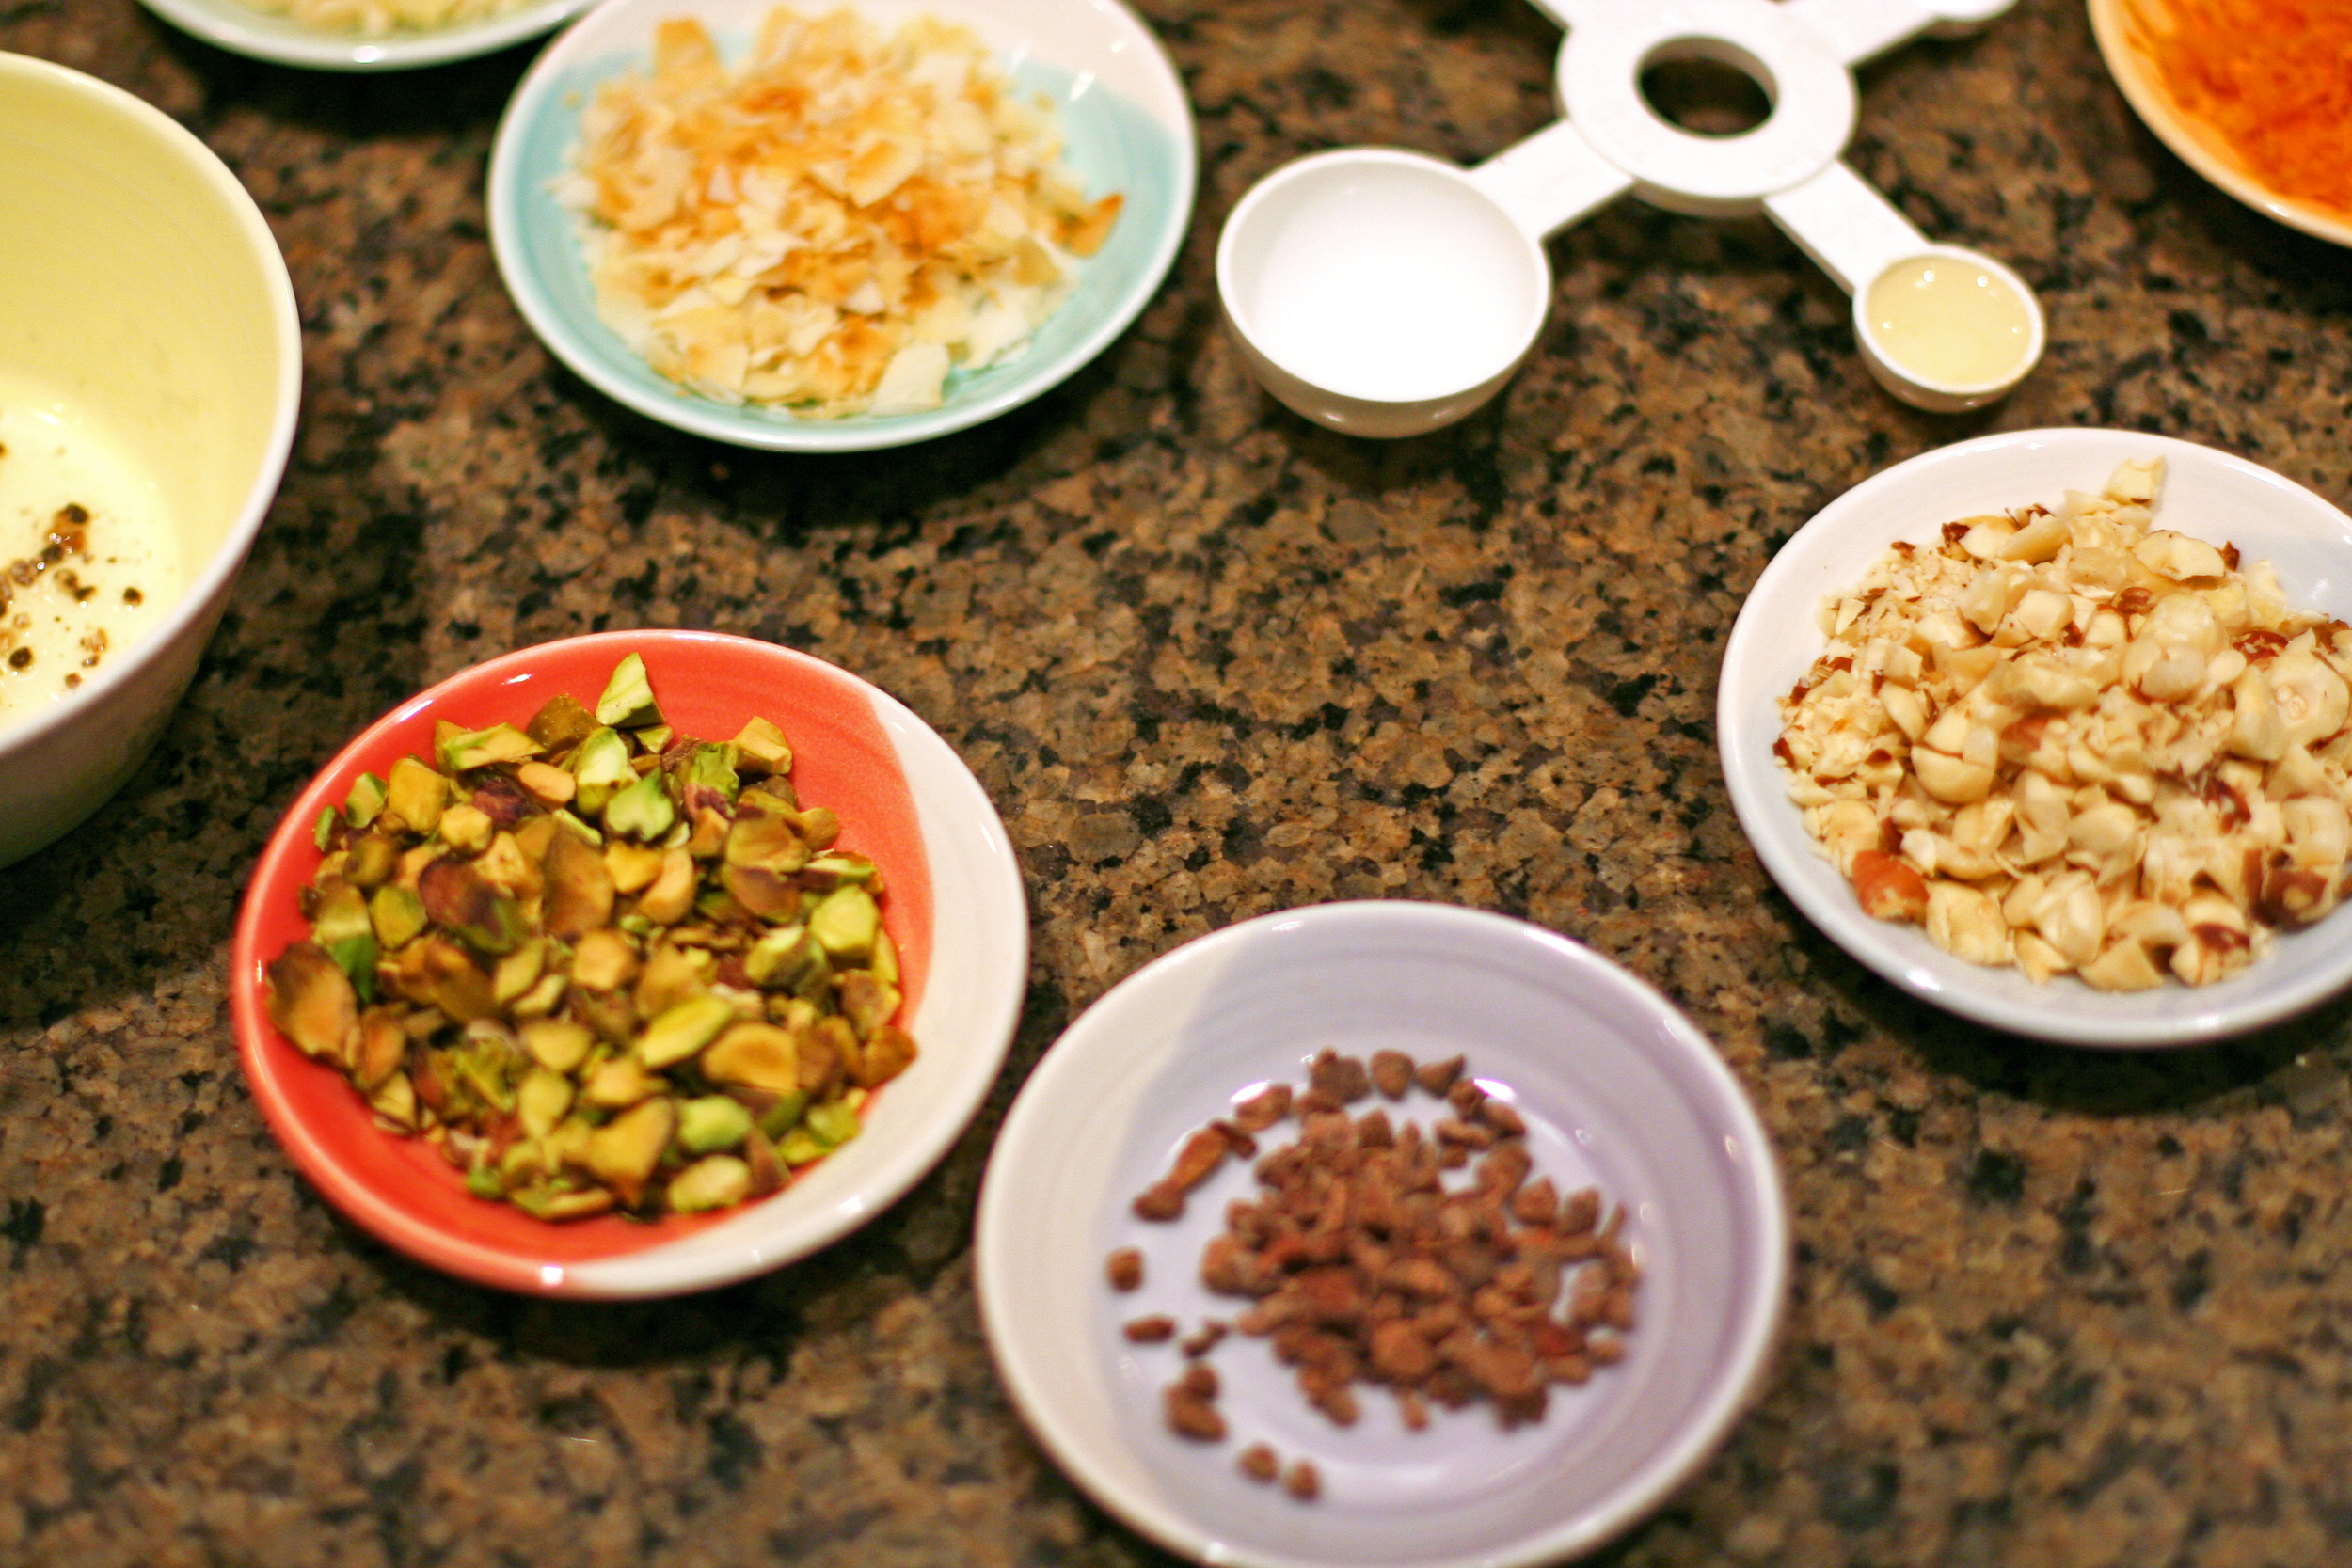 mise en place orange coconut pistachio.jpg